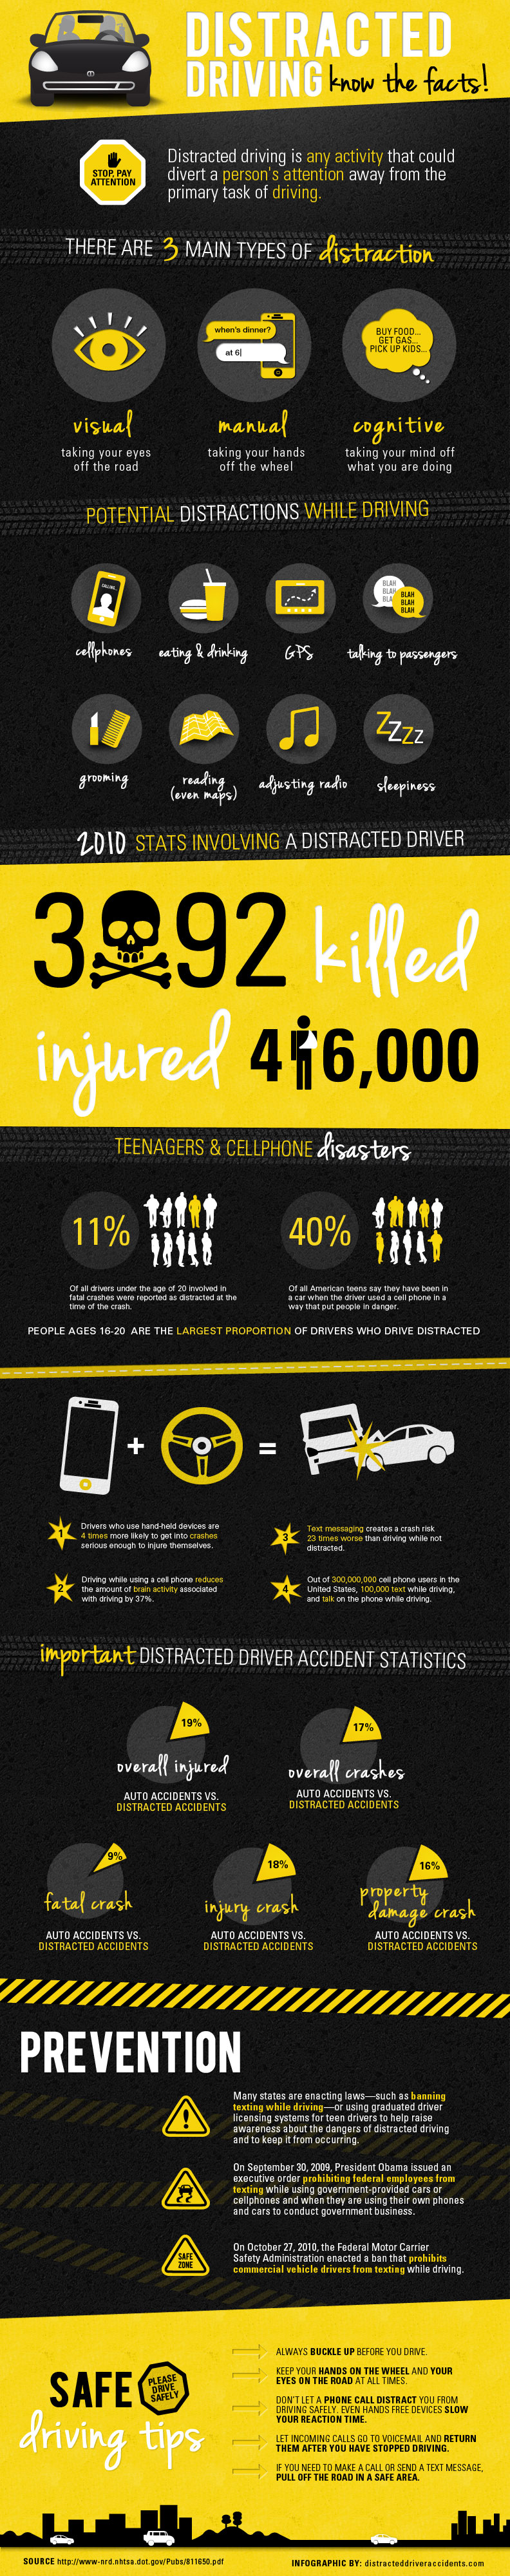 distracted-driving_50a53921ea184